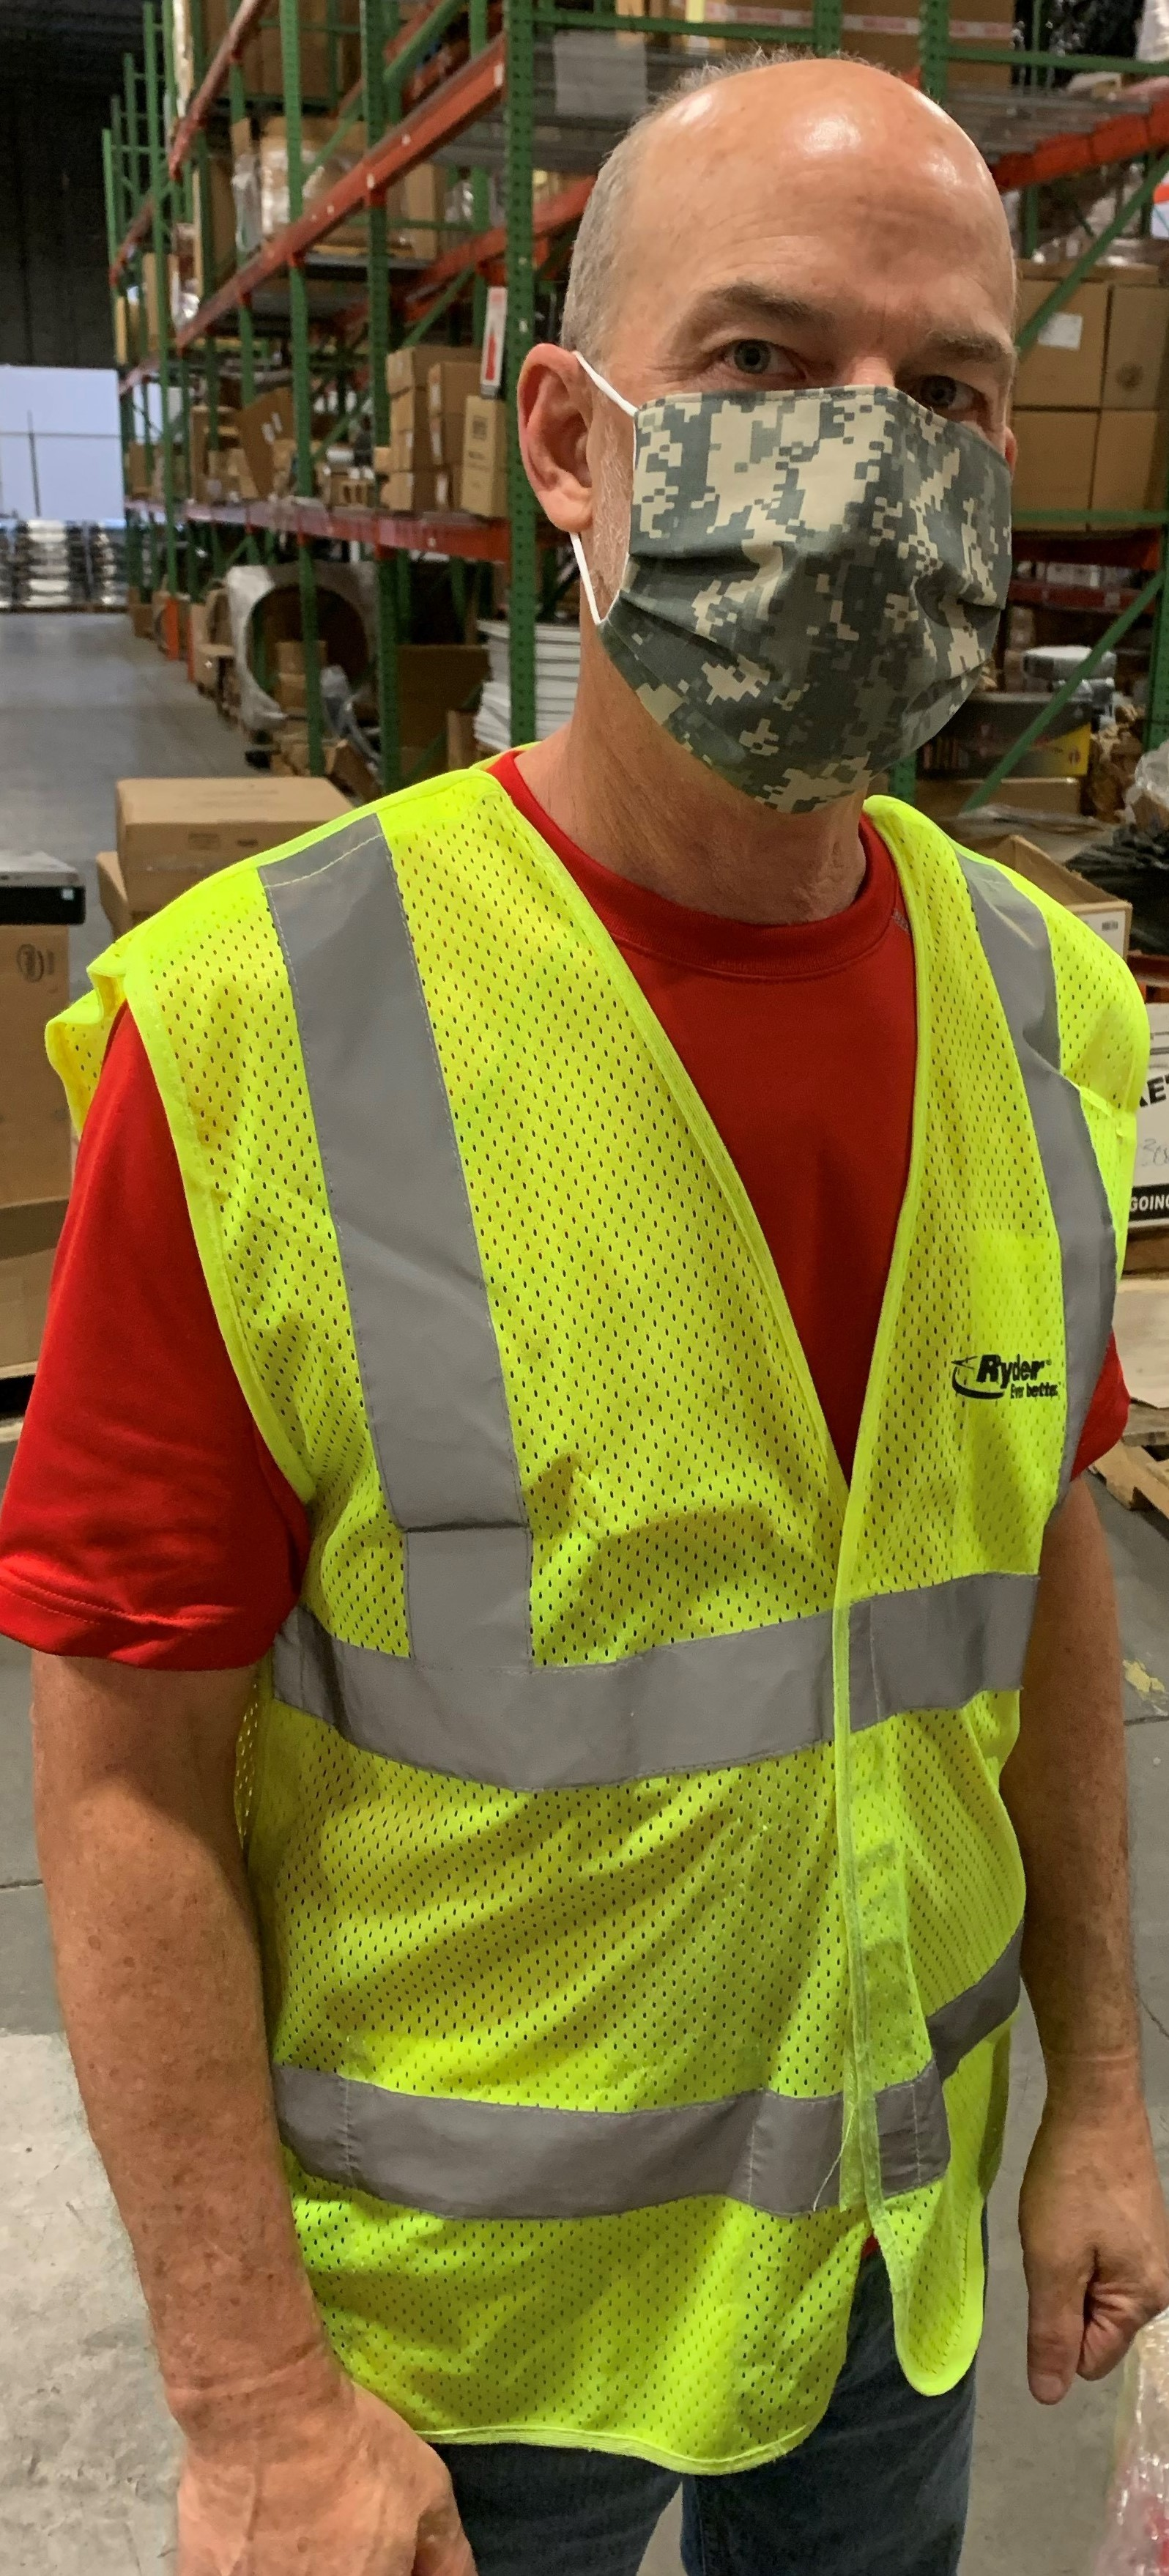 Goodwill South Florida to manufacture 20,000 masks for Ryder employees to wear as they support the flow of essential goods and services needed in the fight against COVID-19. (Photo: Business Wire)